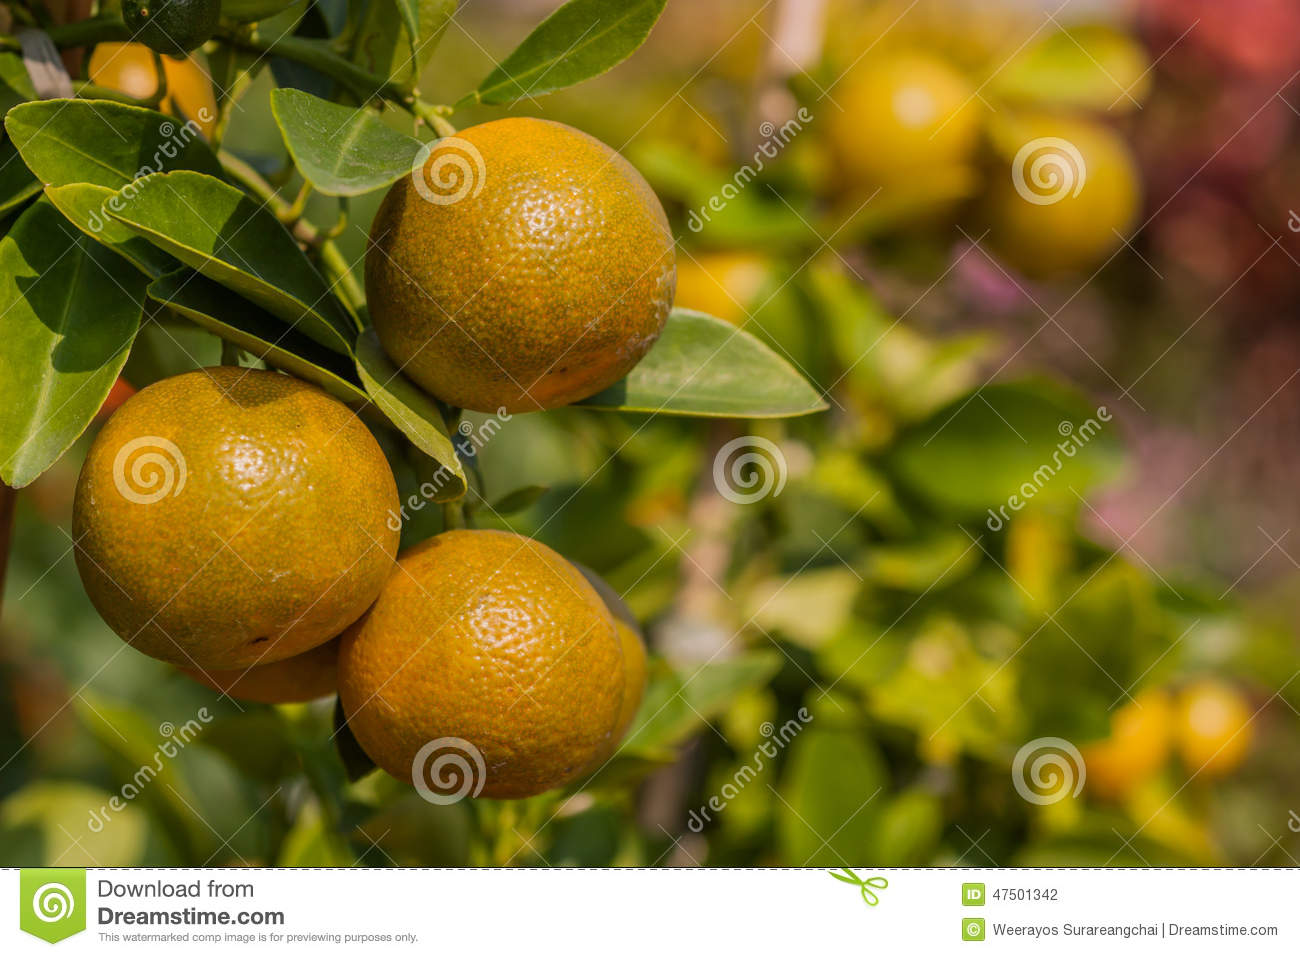 Verger Orange Darbre Fruitier Photo Stock Image Du Vert Exotique